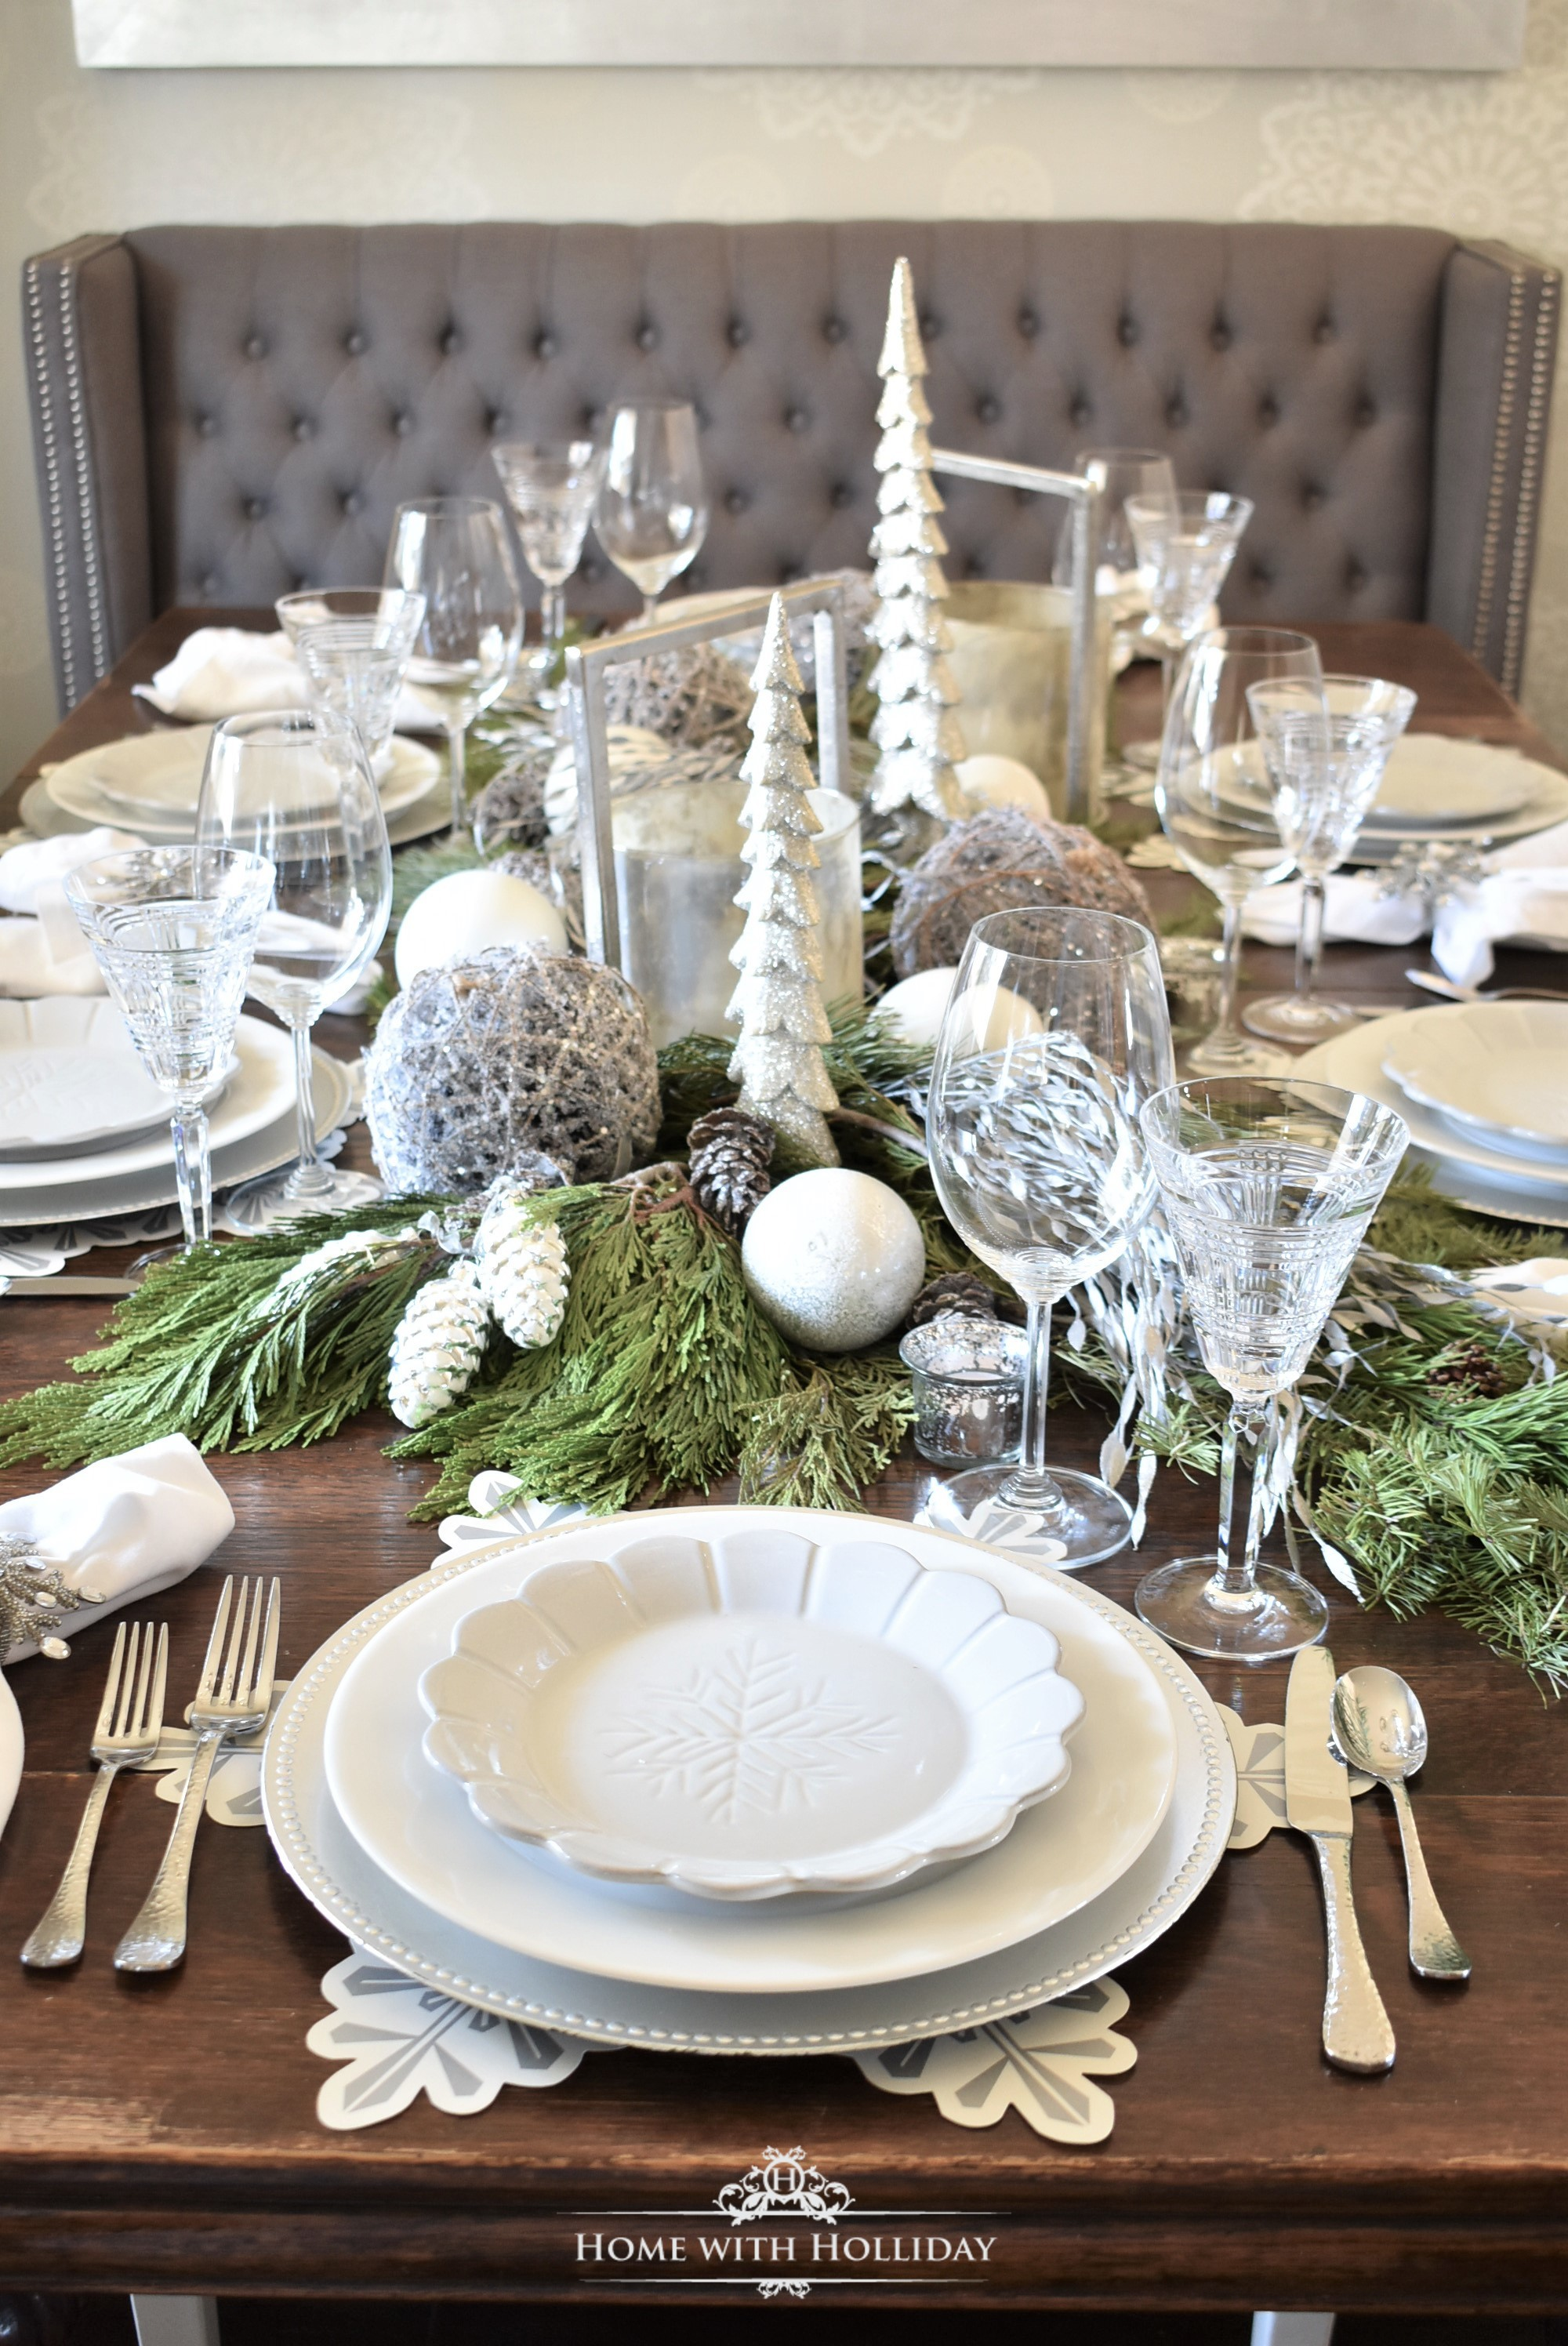 My Christmas Home Tour - Winter White Snowflake Table Setting - Home with Holliday